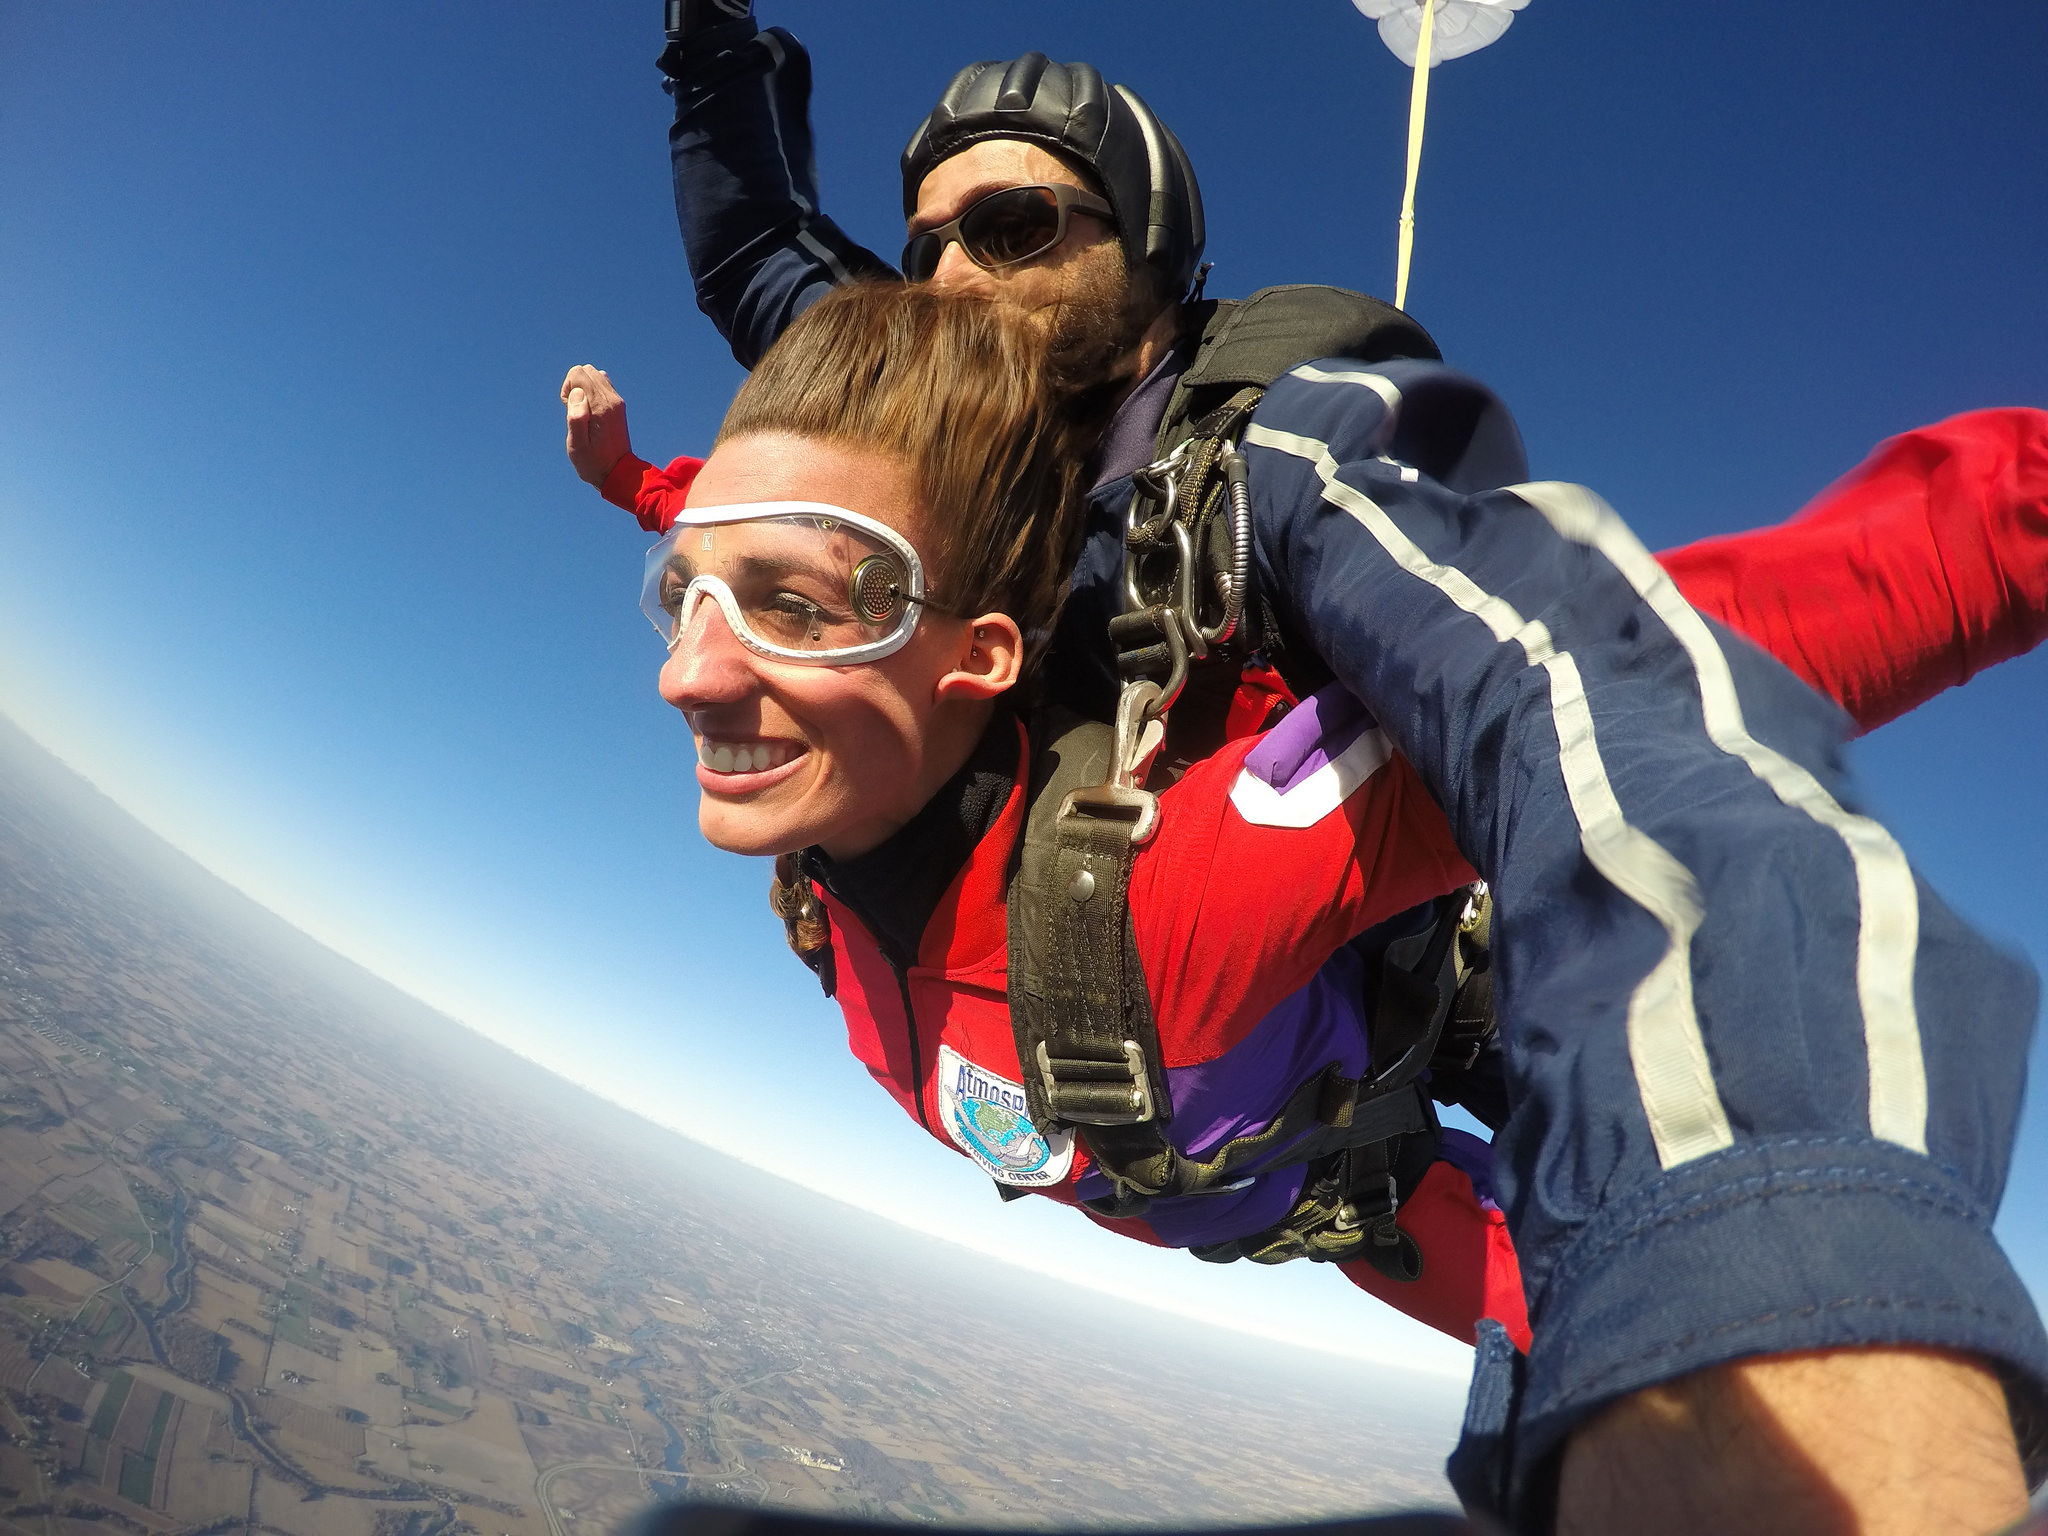 A lady smiles while in free fall during a tandem skydive.